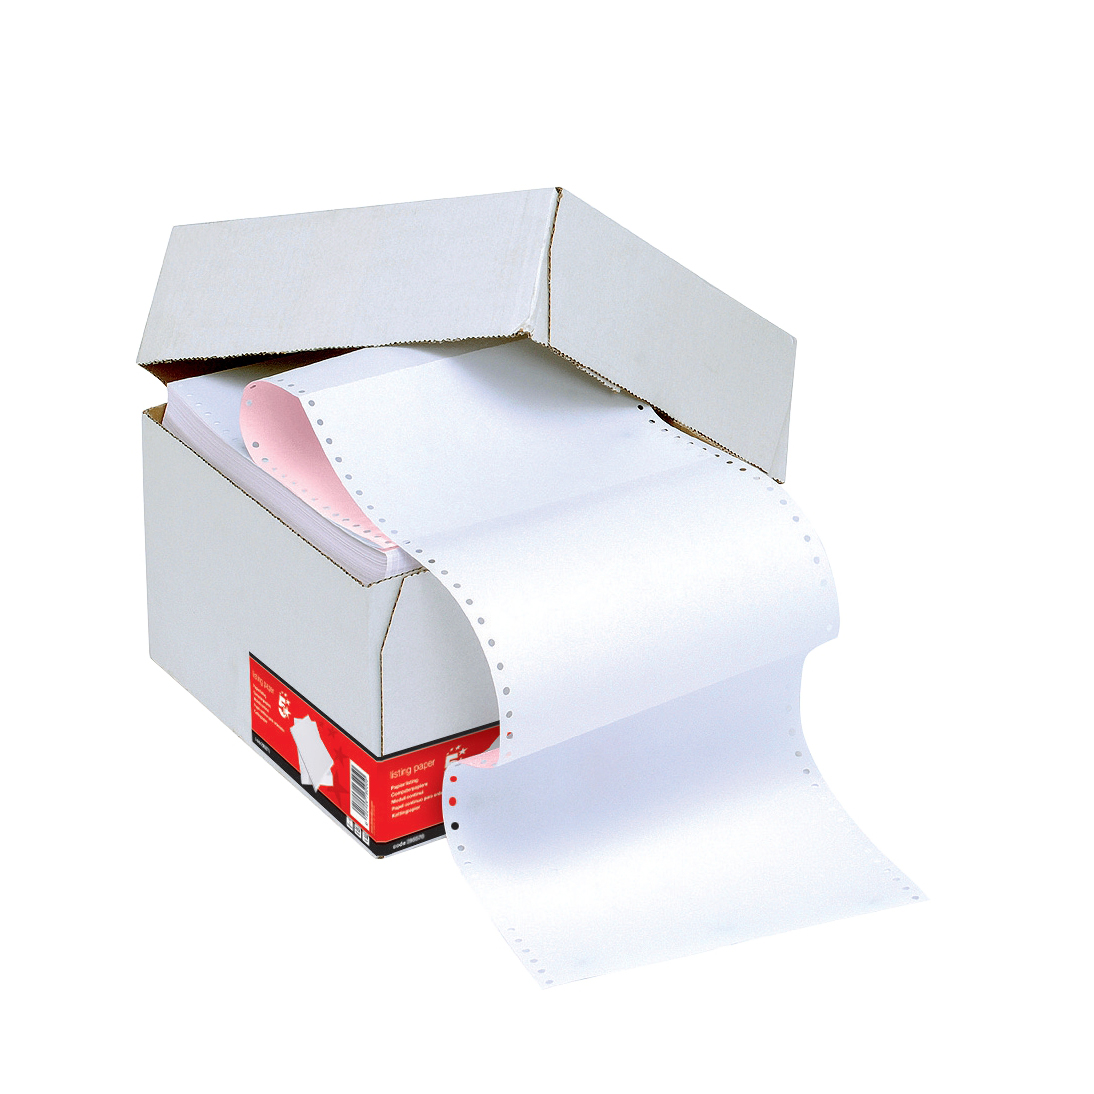 5 Star Office Listing Paper 2-Part Carbonless Perf 56/57gsm 11inchx241mm Plain White/Pink [1000 Sheets]